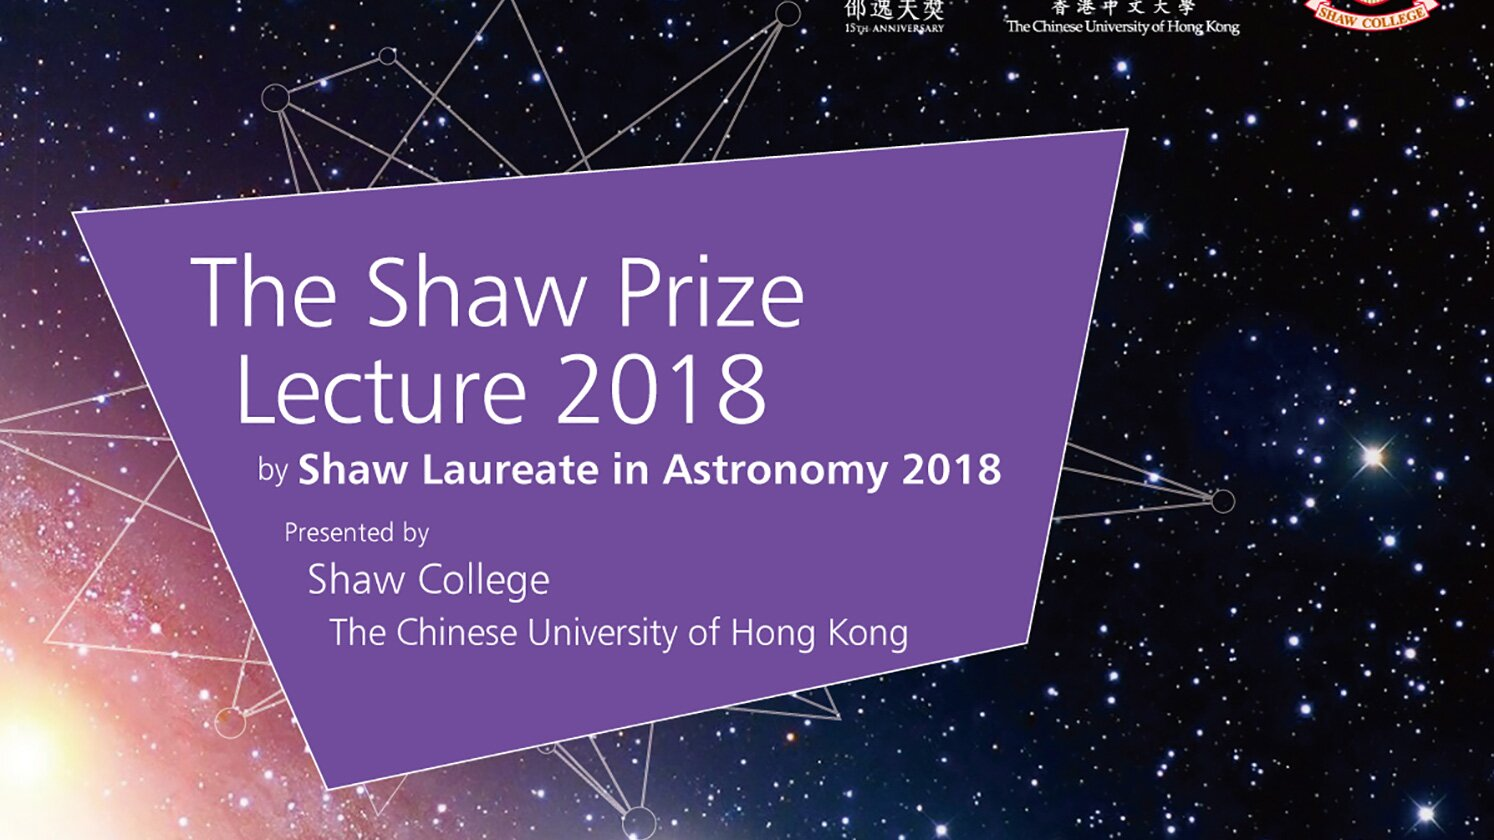 The Shaw Prize Lecture 2018 by Shaw Laureate in Astronomy 2018